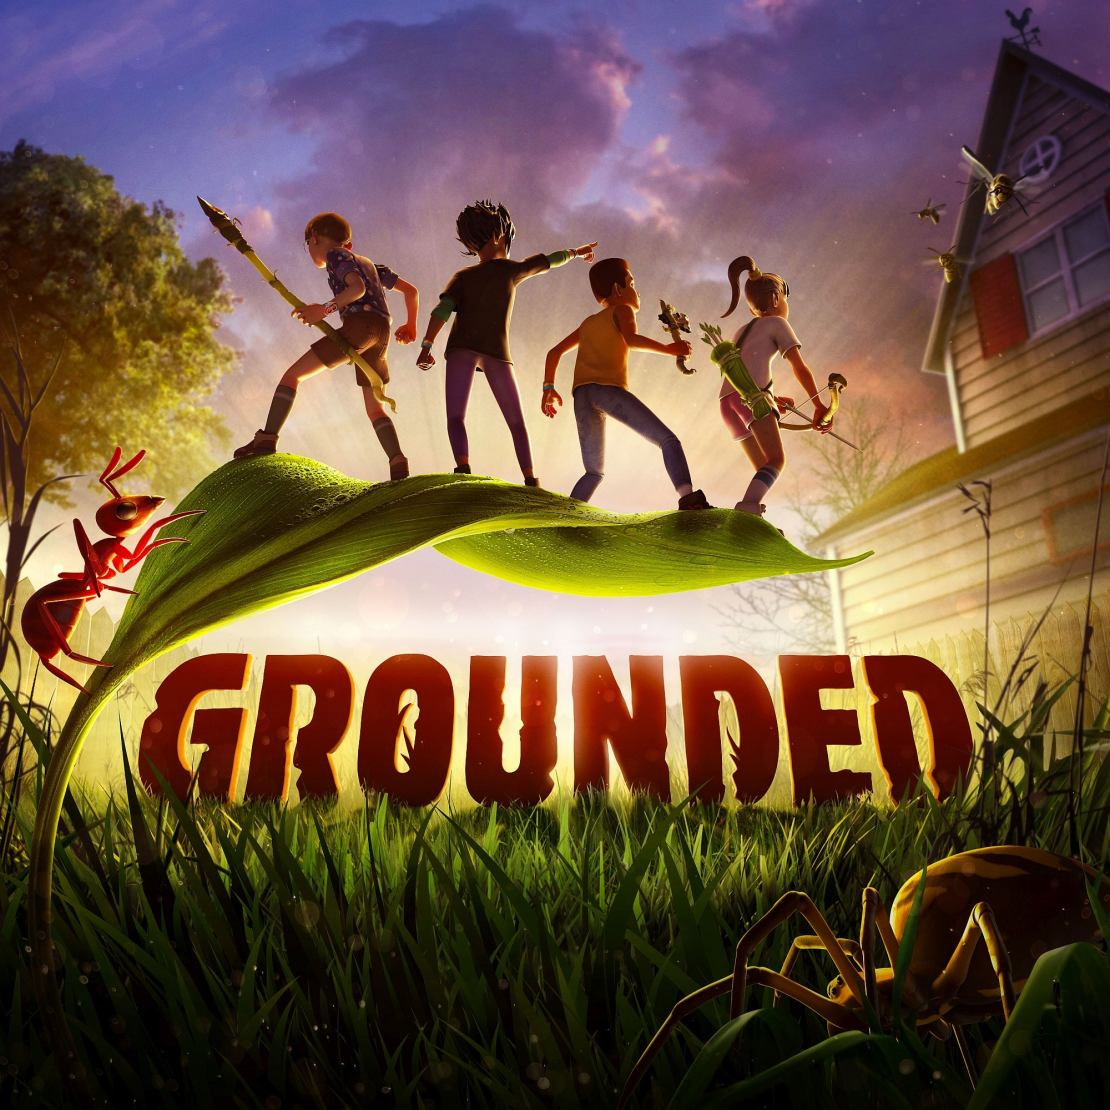 Grounded Poster Video Game Review